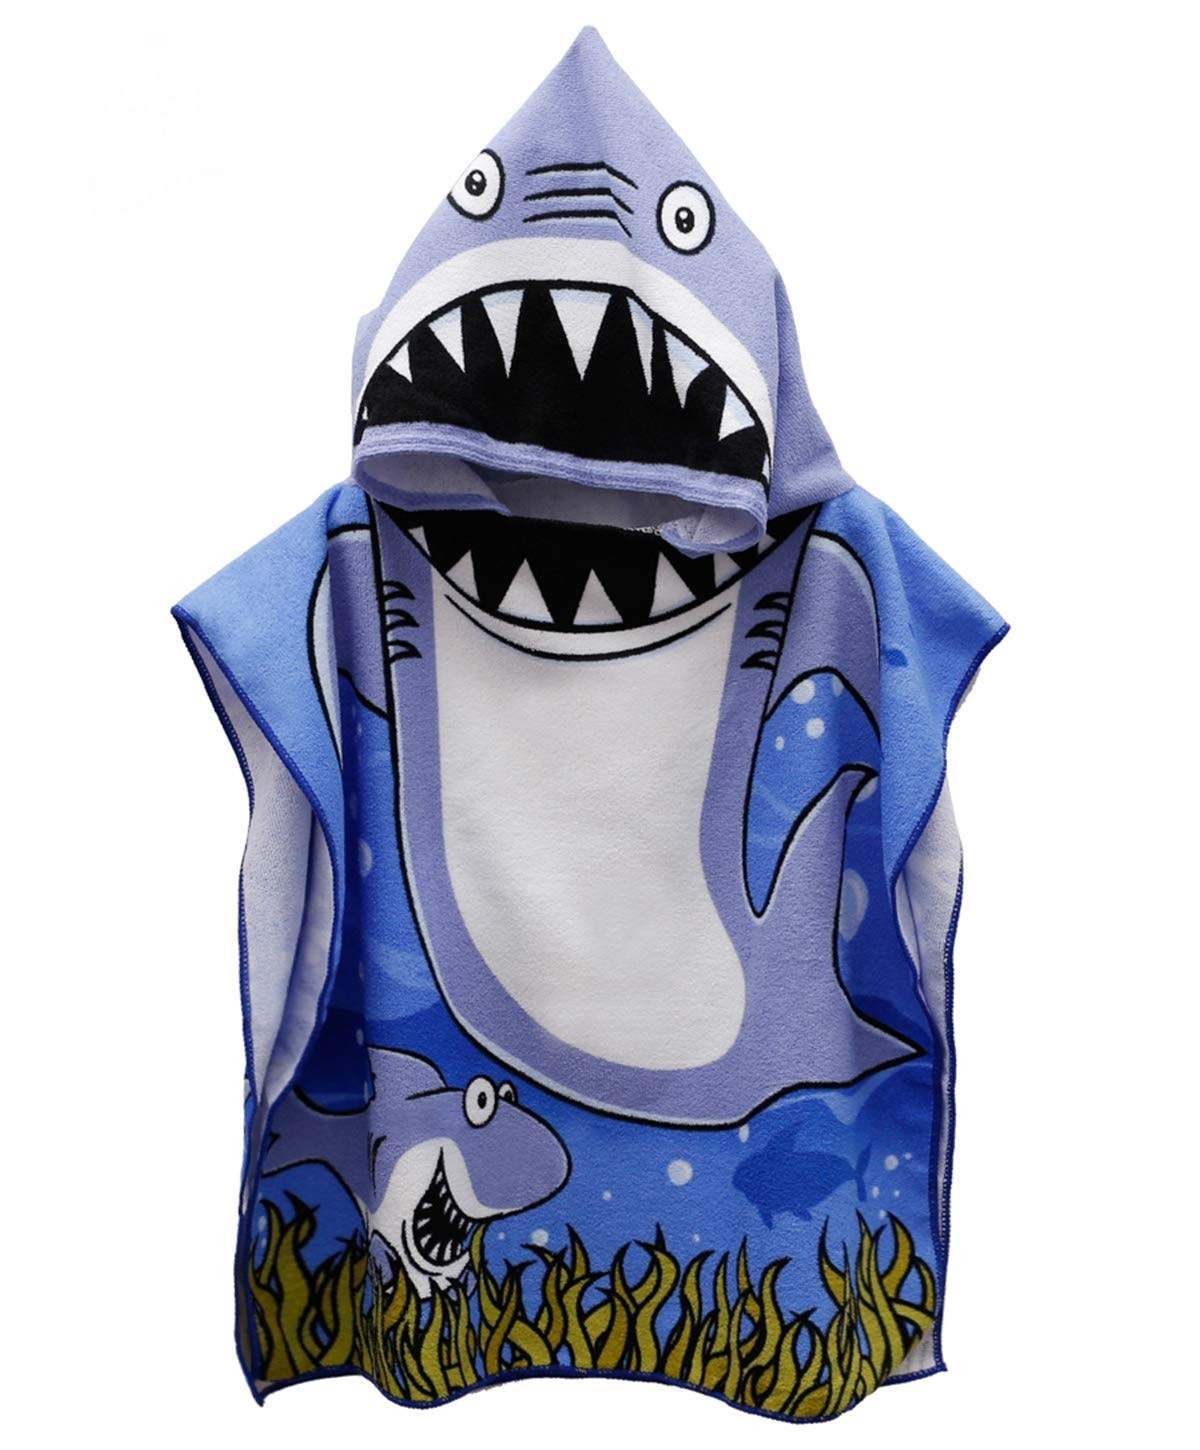 Kids Hooded Beach Bath Towel Shark Printed Soft Swim Pool Coverup Poncho Cape Boys Kids Children Bath Robe#15